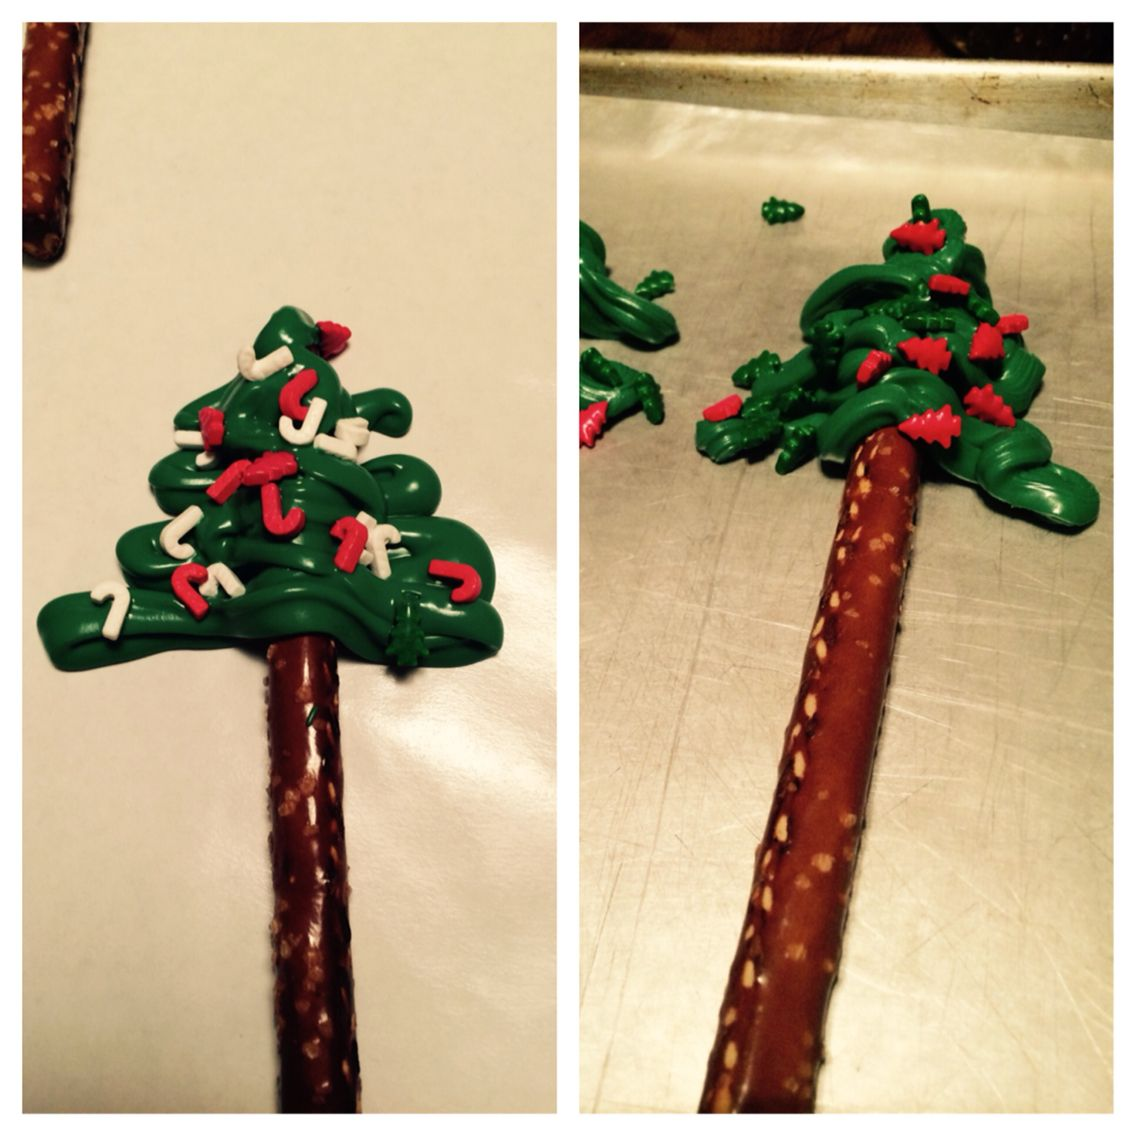 My mom and I decided to get a bit crafty and make little chocolate Christmas trees! super easy and super cute!